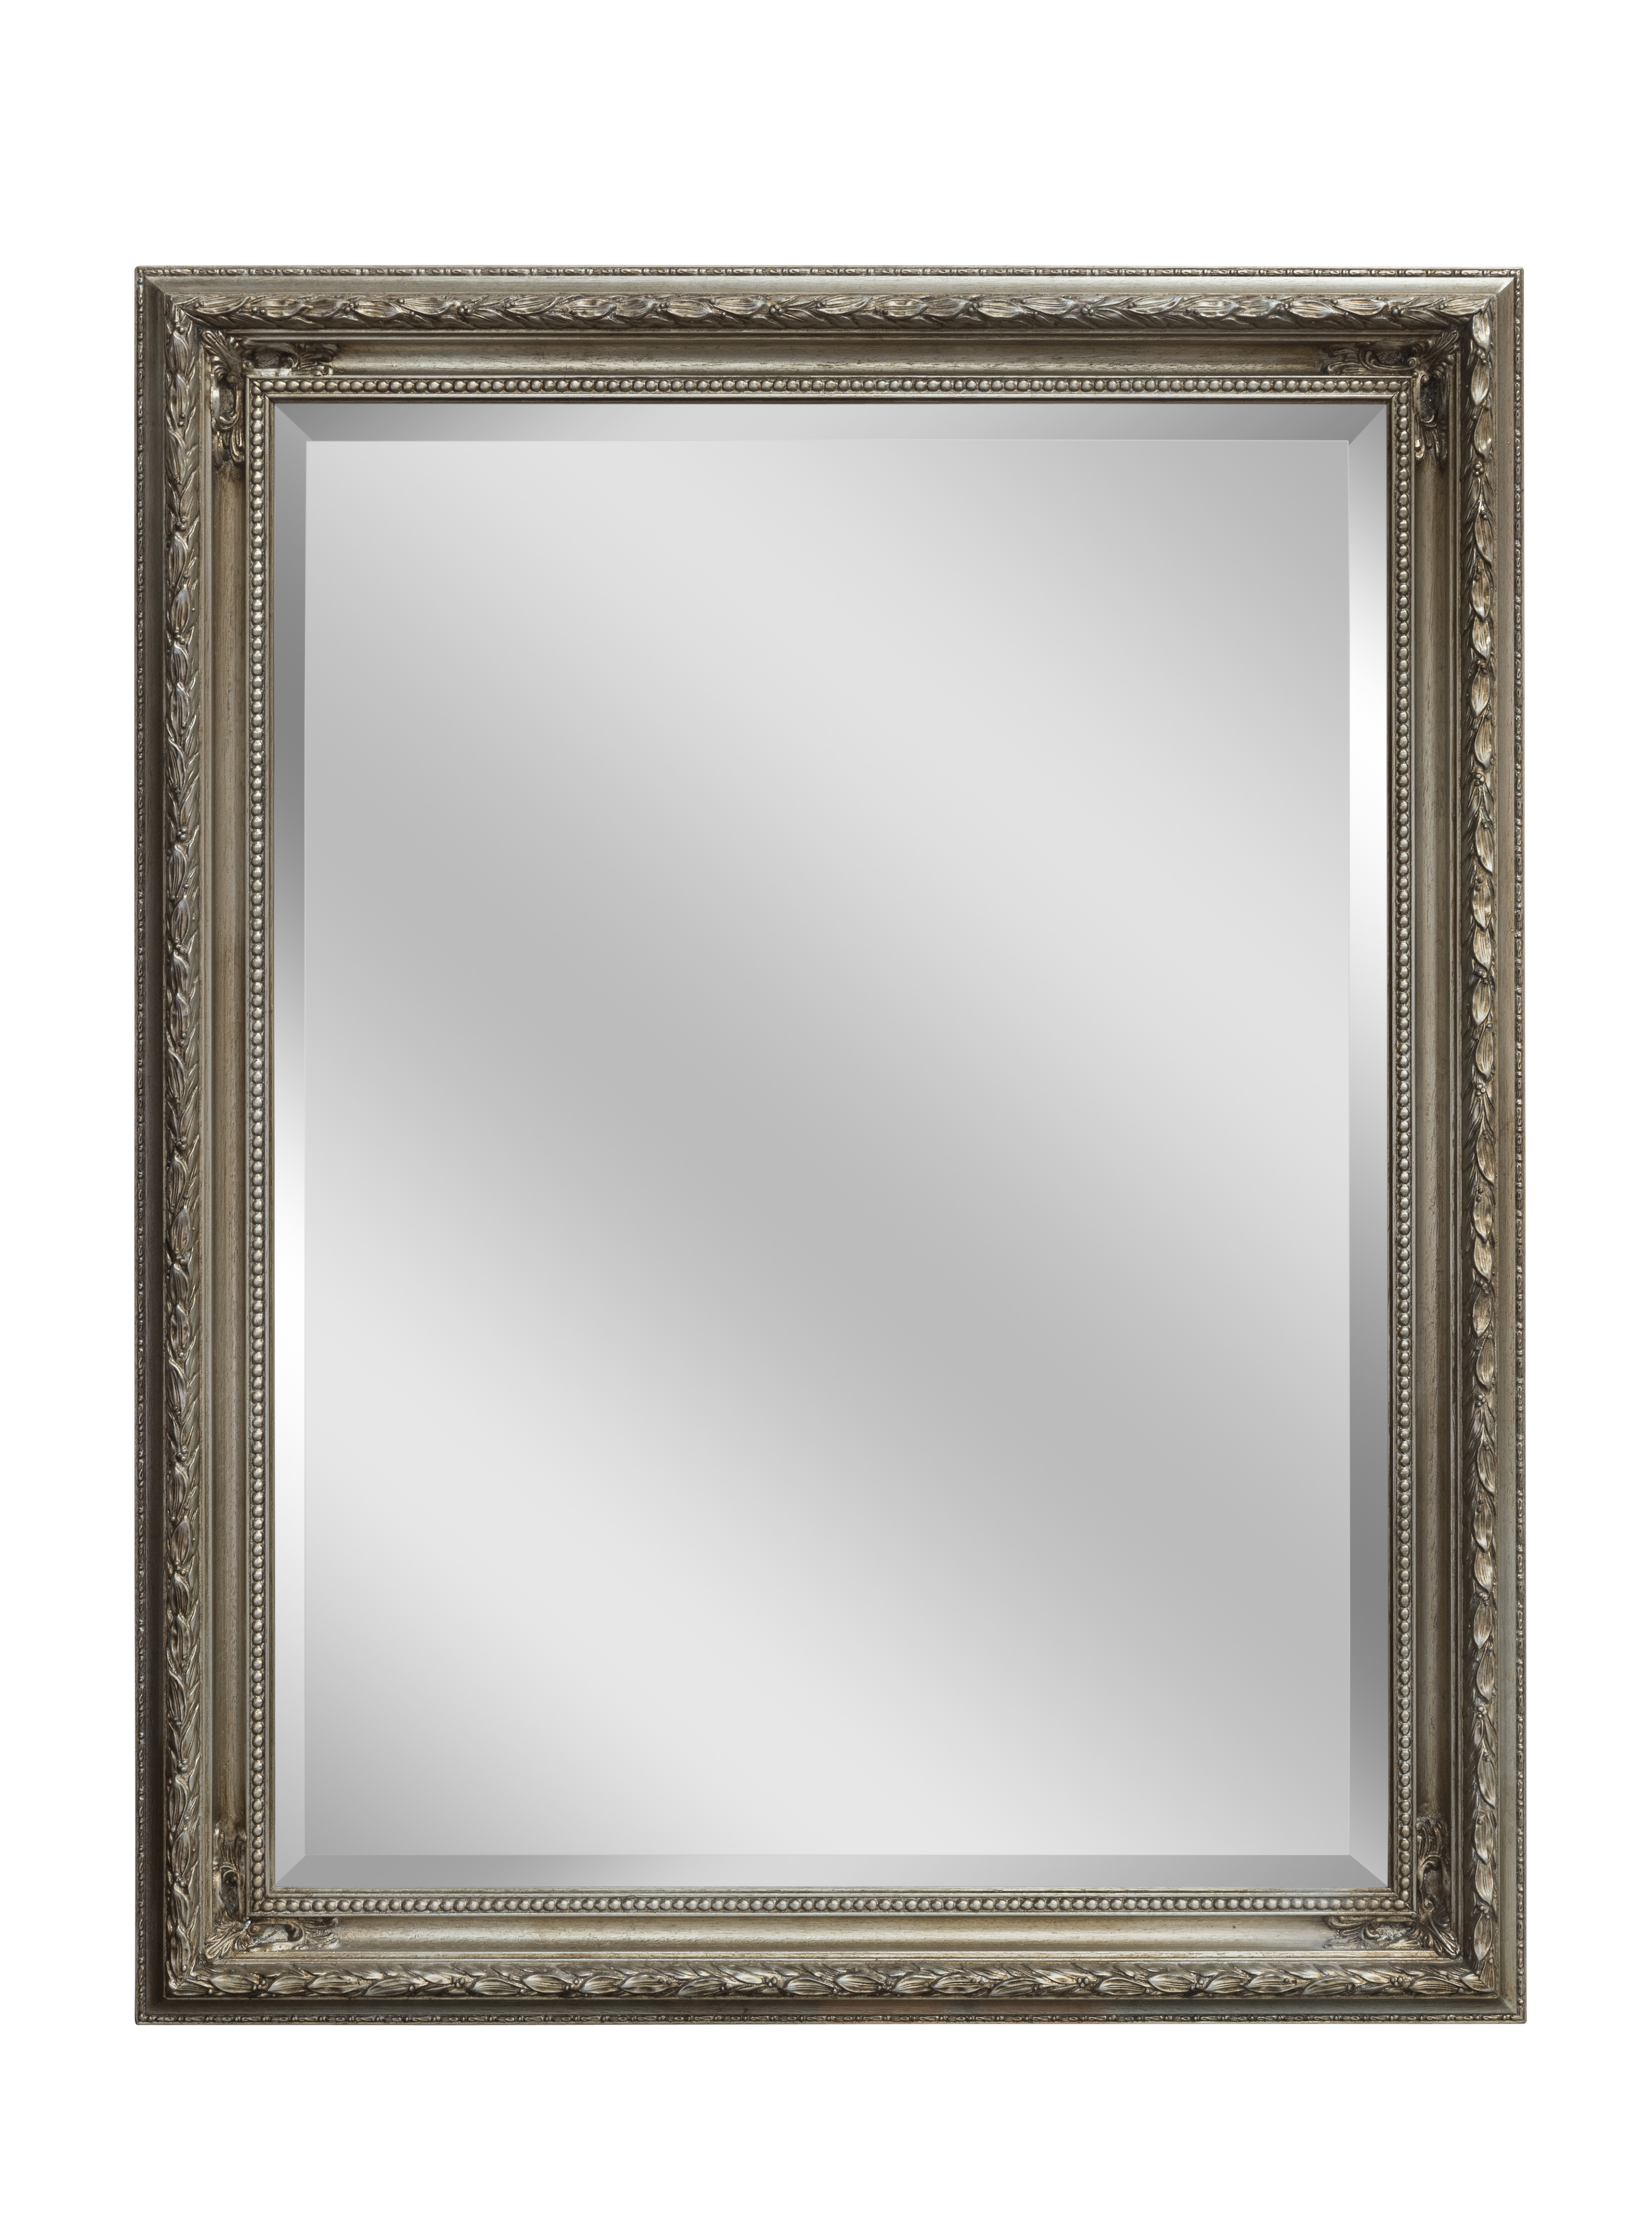 Silver Baroque Mirror Large Mirrors For Sale Panfili Mirrors Inside Silver Mirrors For Sale (View 11 of 15)